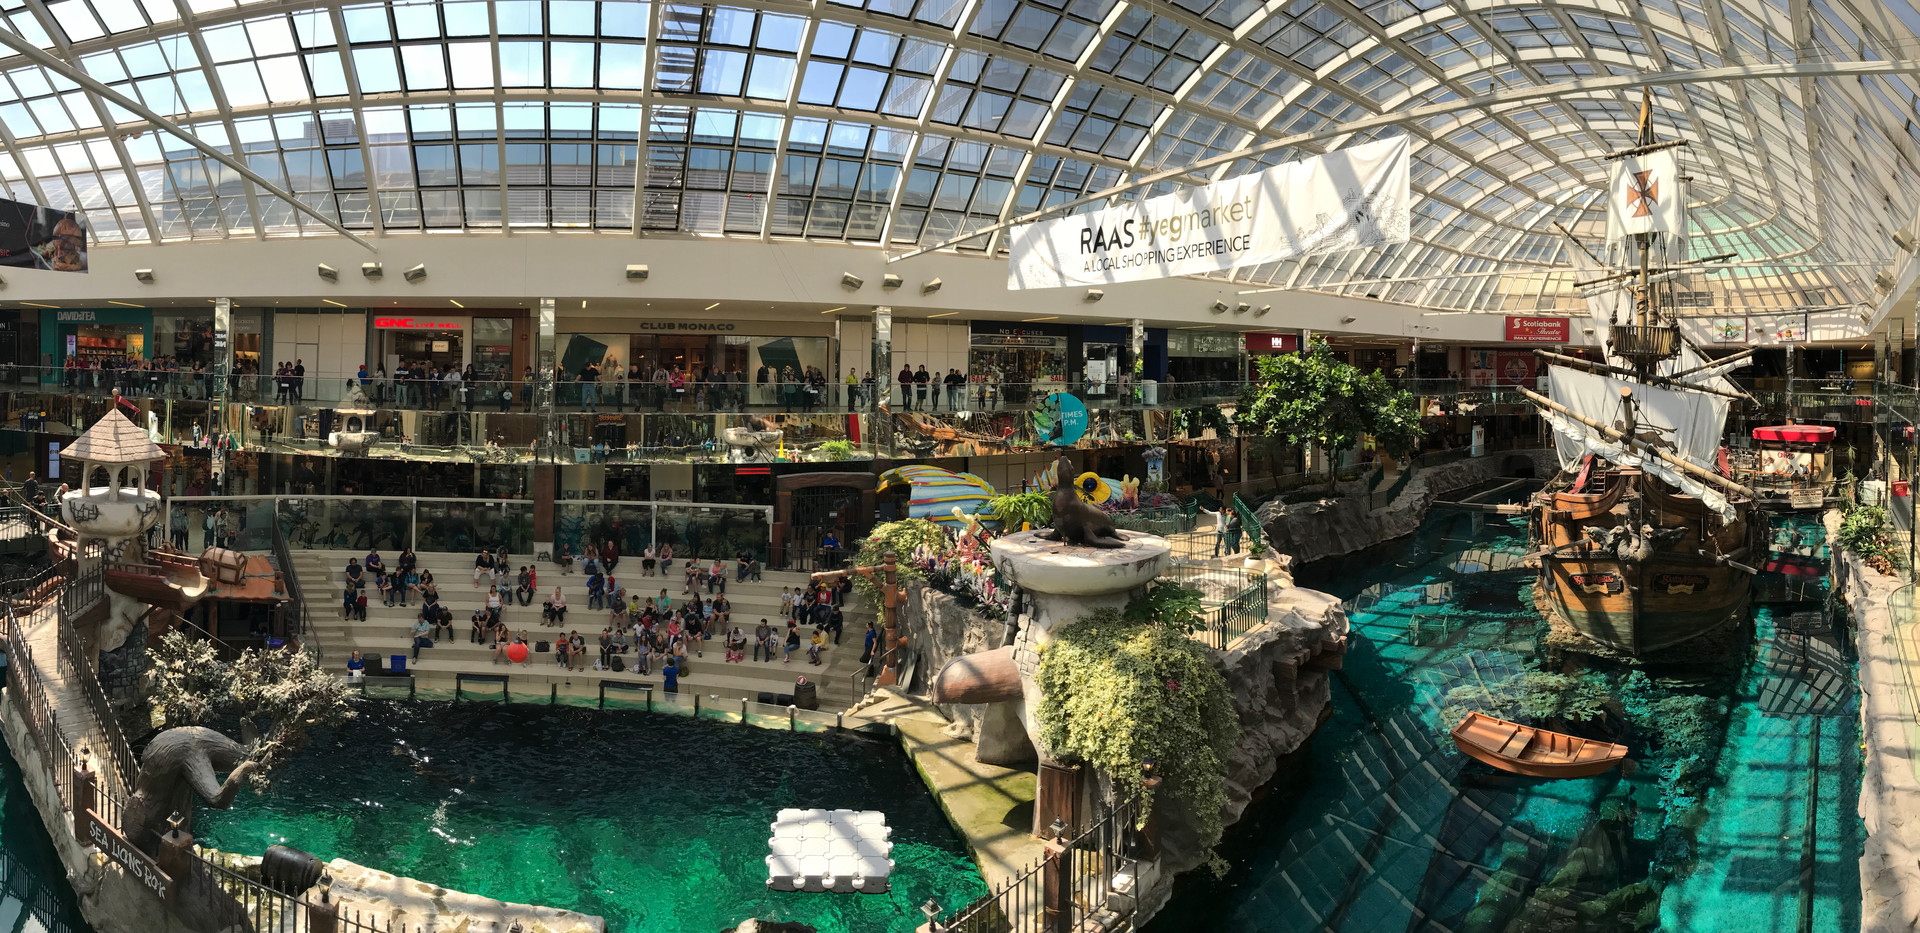 Edmonton Mall, Canada Jun 2018